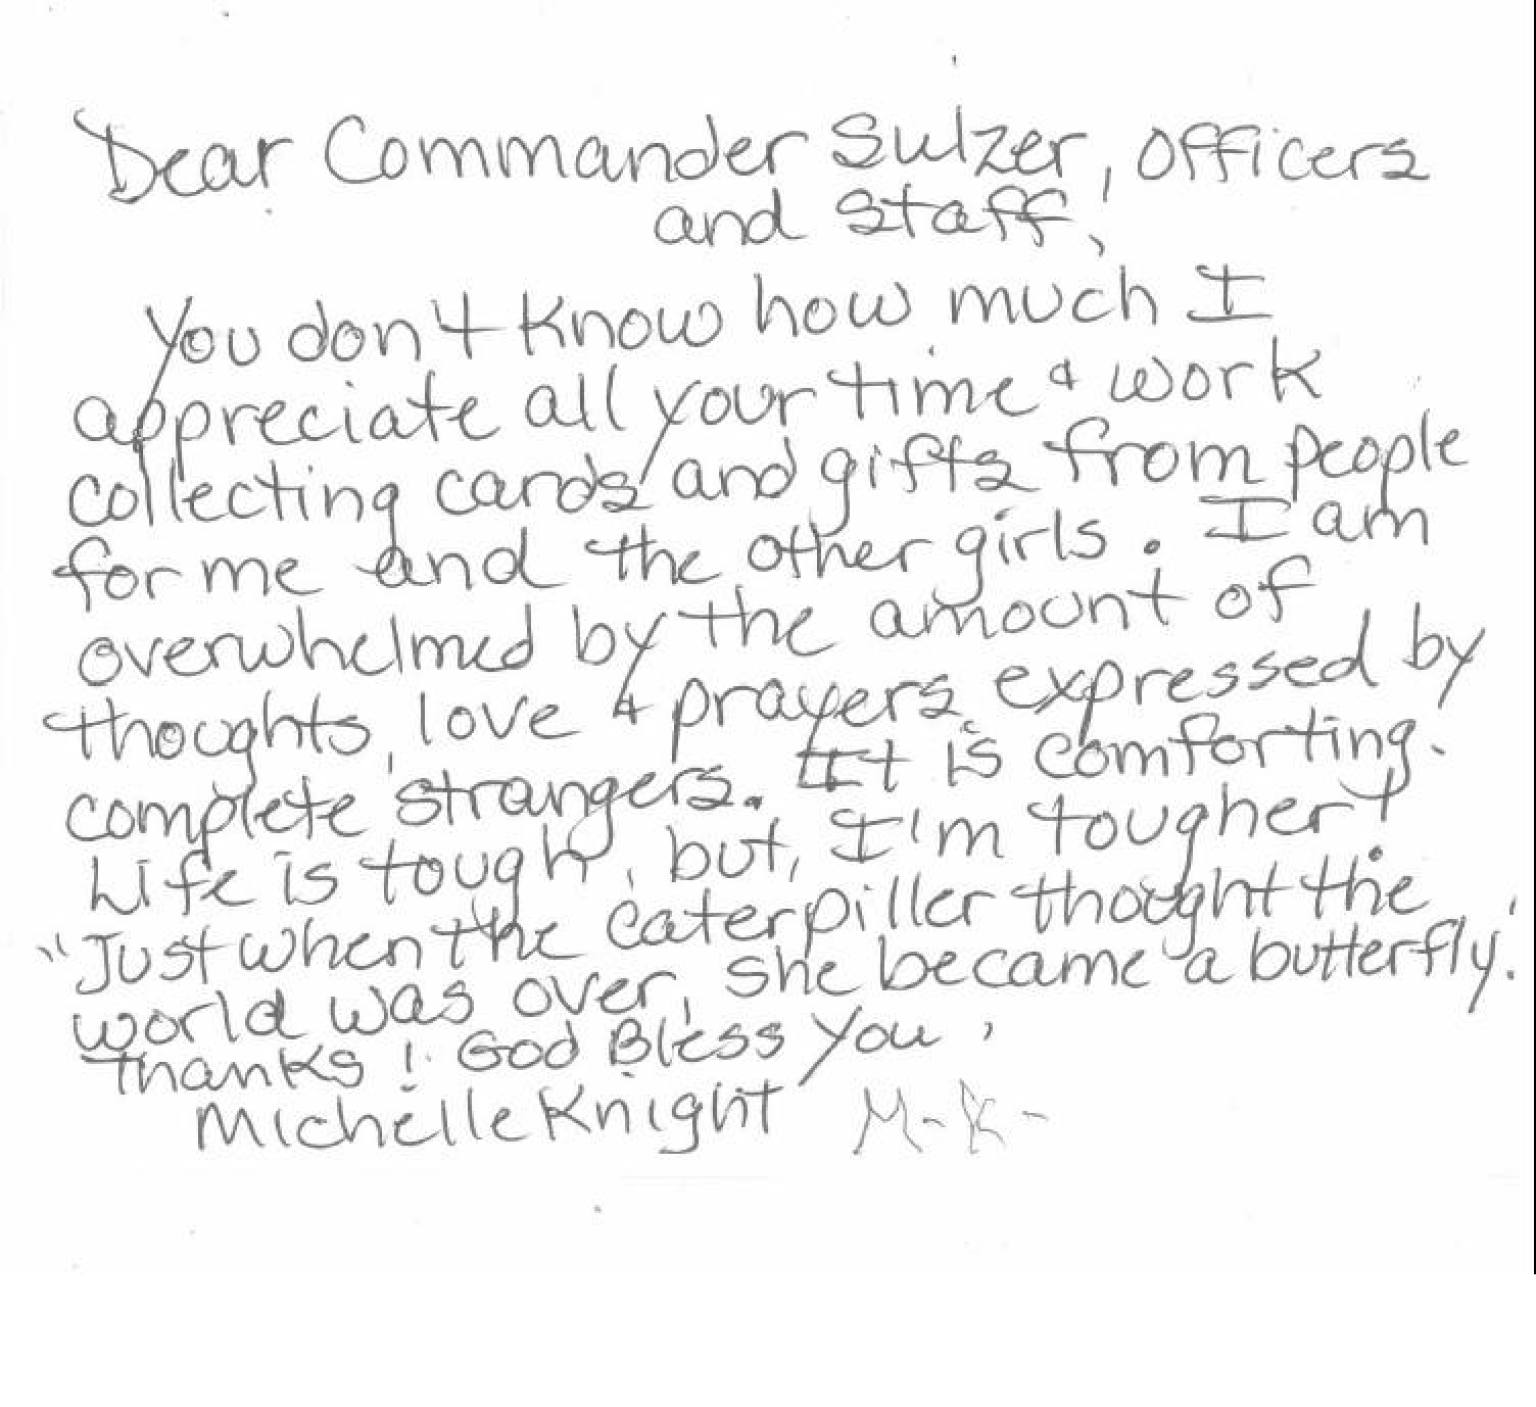 michelle knight s heartfelt note to cleveland police and other michelle knight s heartfelt note to cleveland police and other thank you notes to cops photos the huffington post